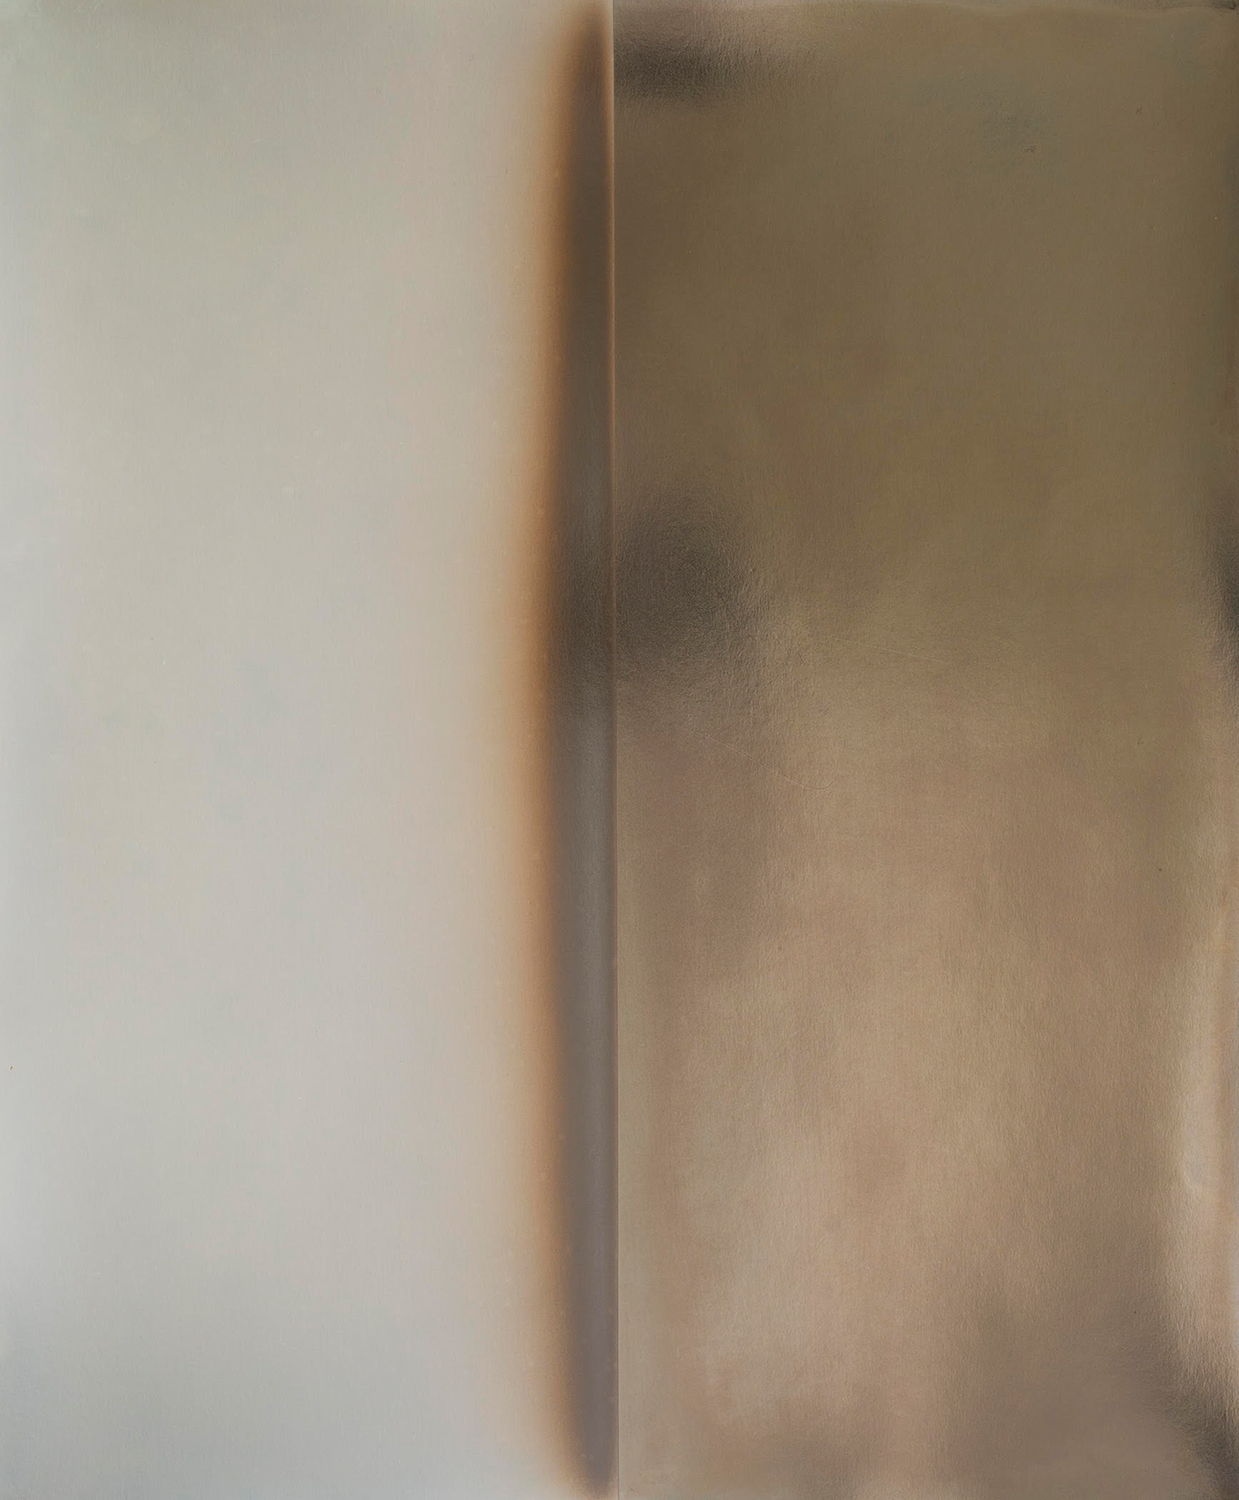 Untitled (Vertical)